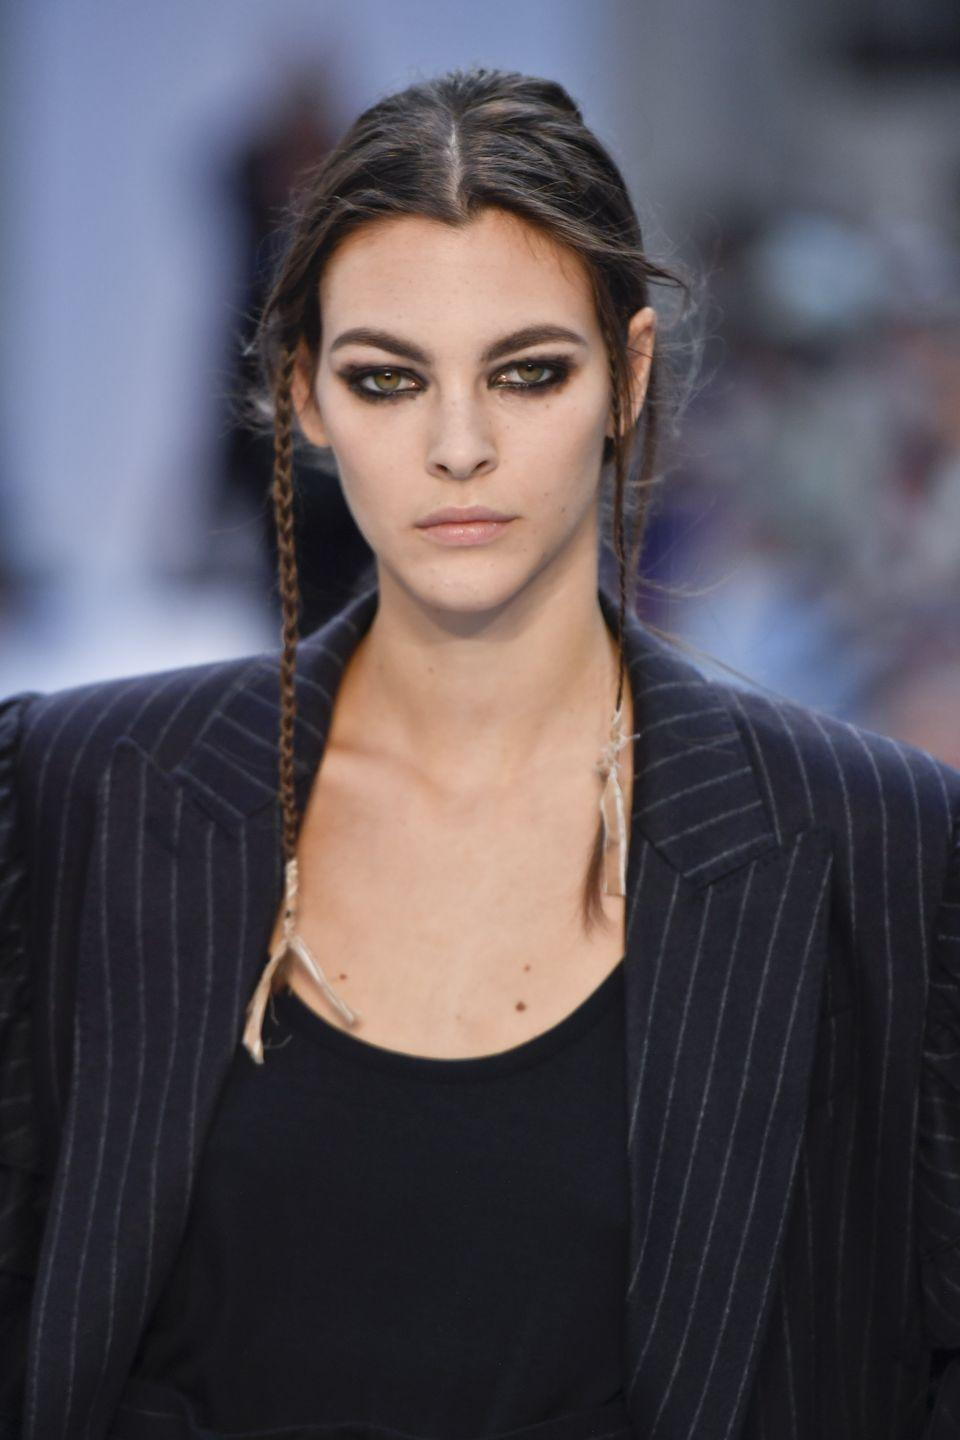 <p>Models at Max Mara also rocked smudgy liner that's suitable for anyone that wants to add an edge to their ensemble.</p>